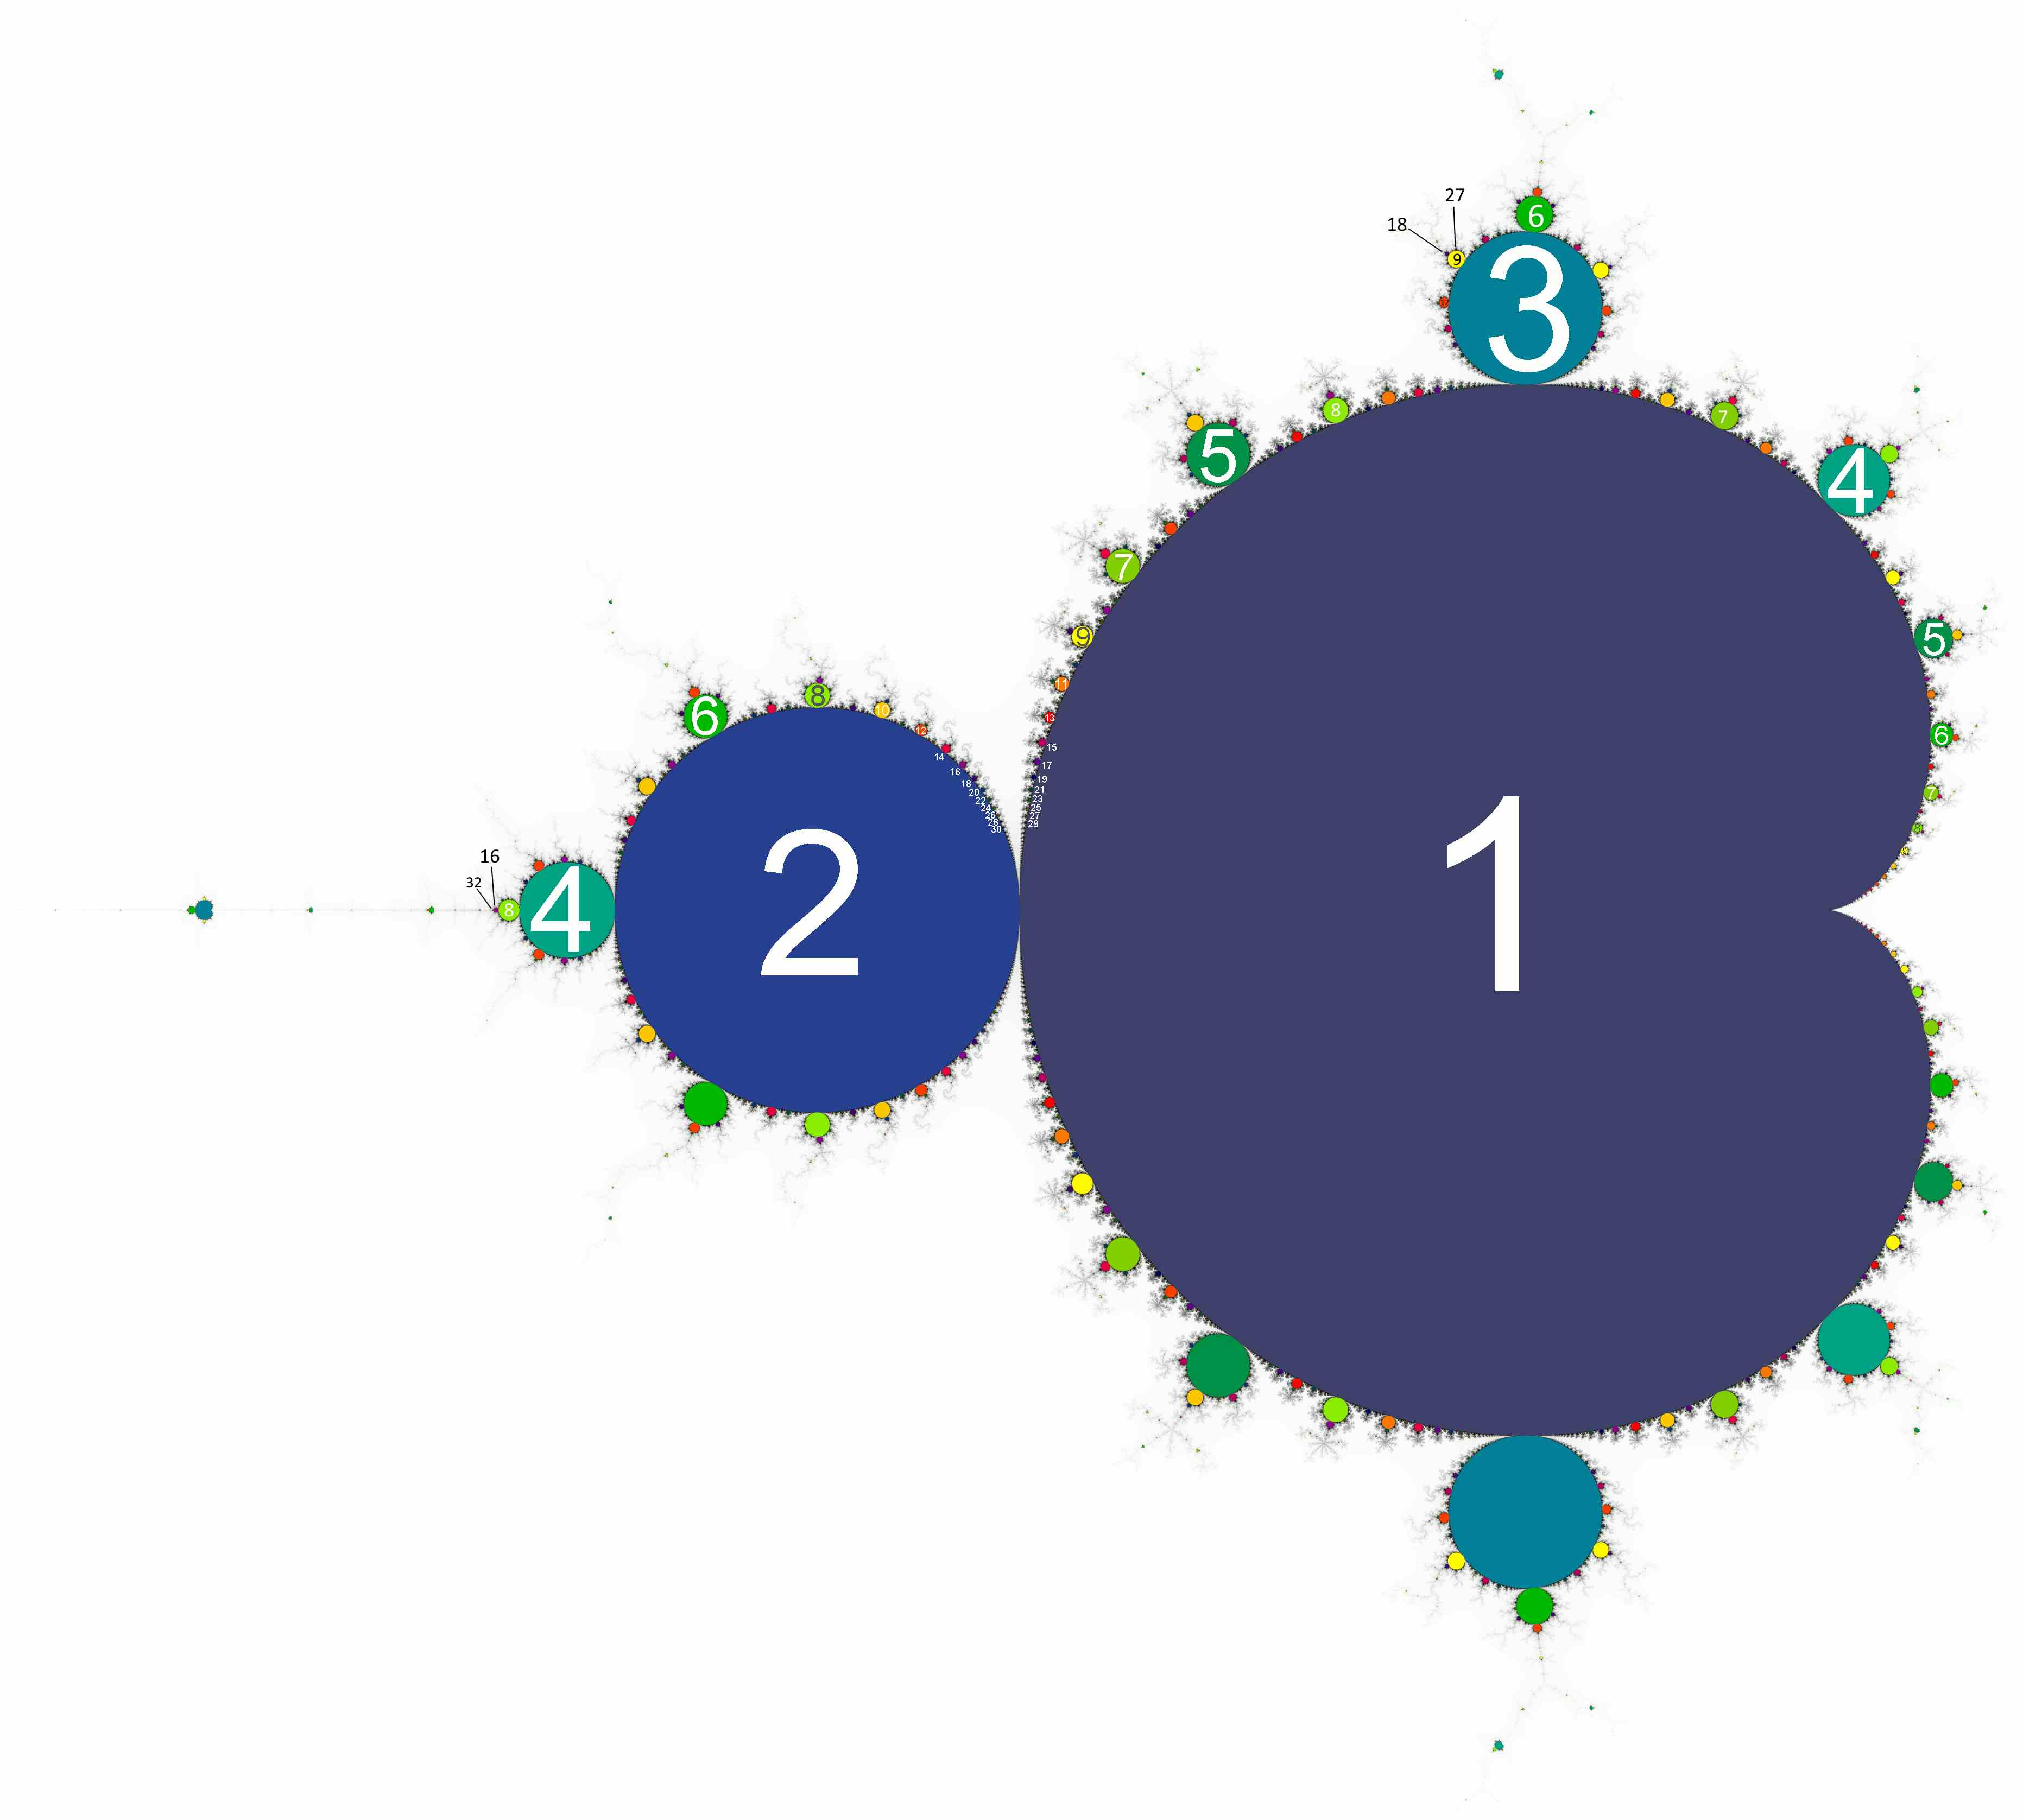 Hidden numbers and basic mathematics in the Mandelbrot-Set - Fractal